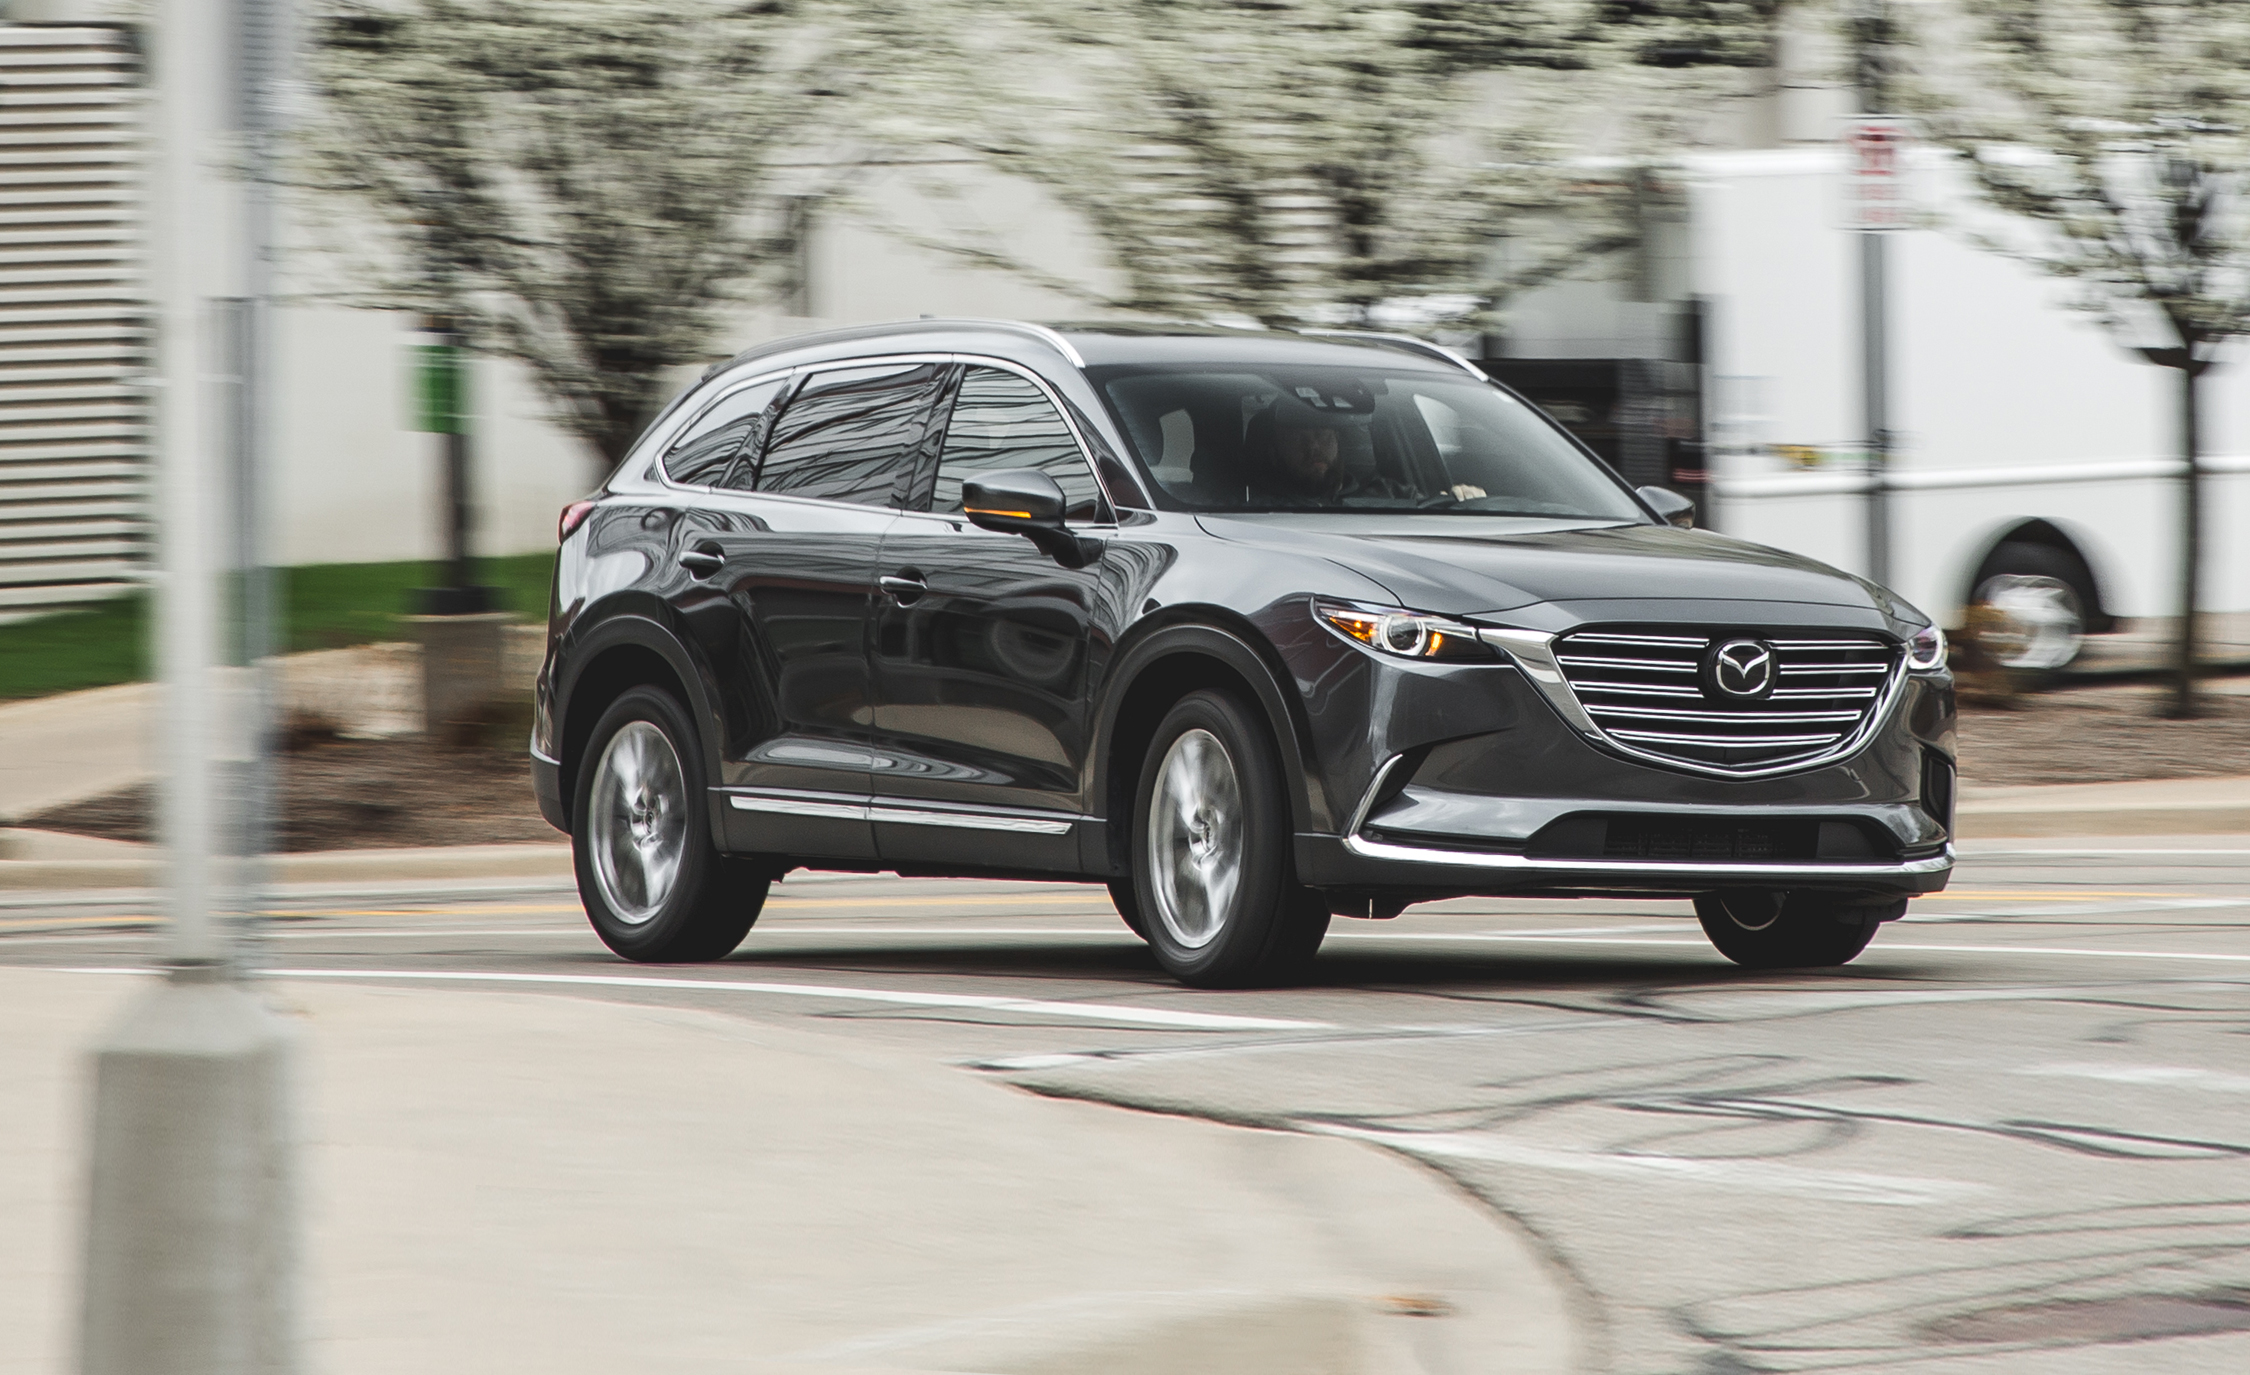 2018 Mazda CX-9: Built to Perform & Impress